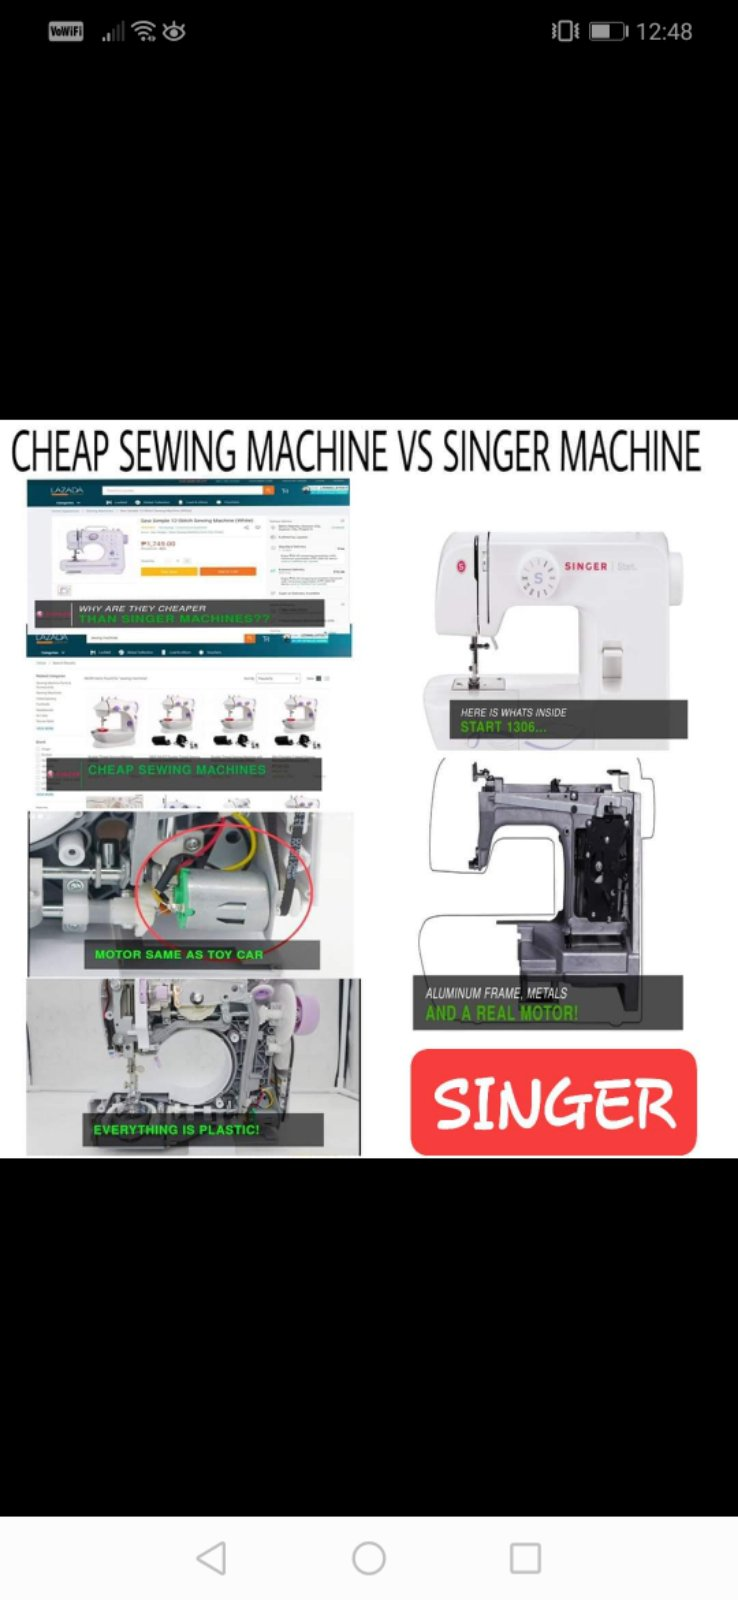 Normal Sewing Machine And Singer Sewing Machine